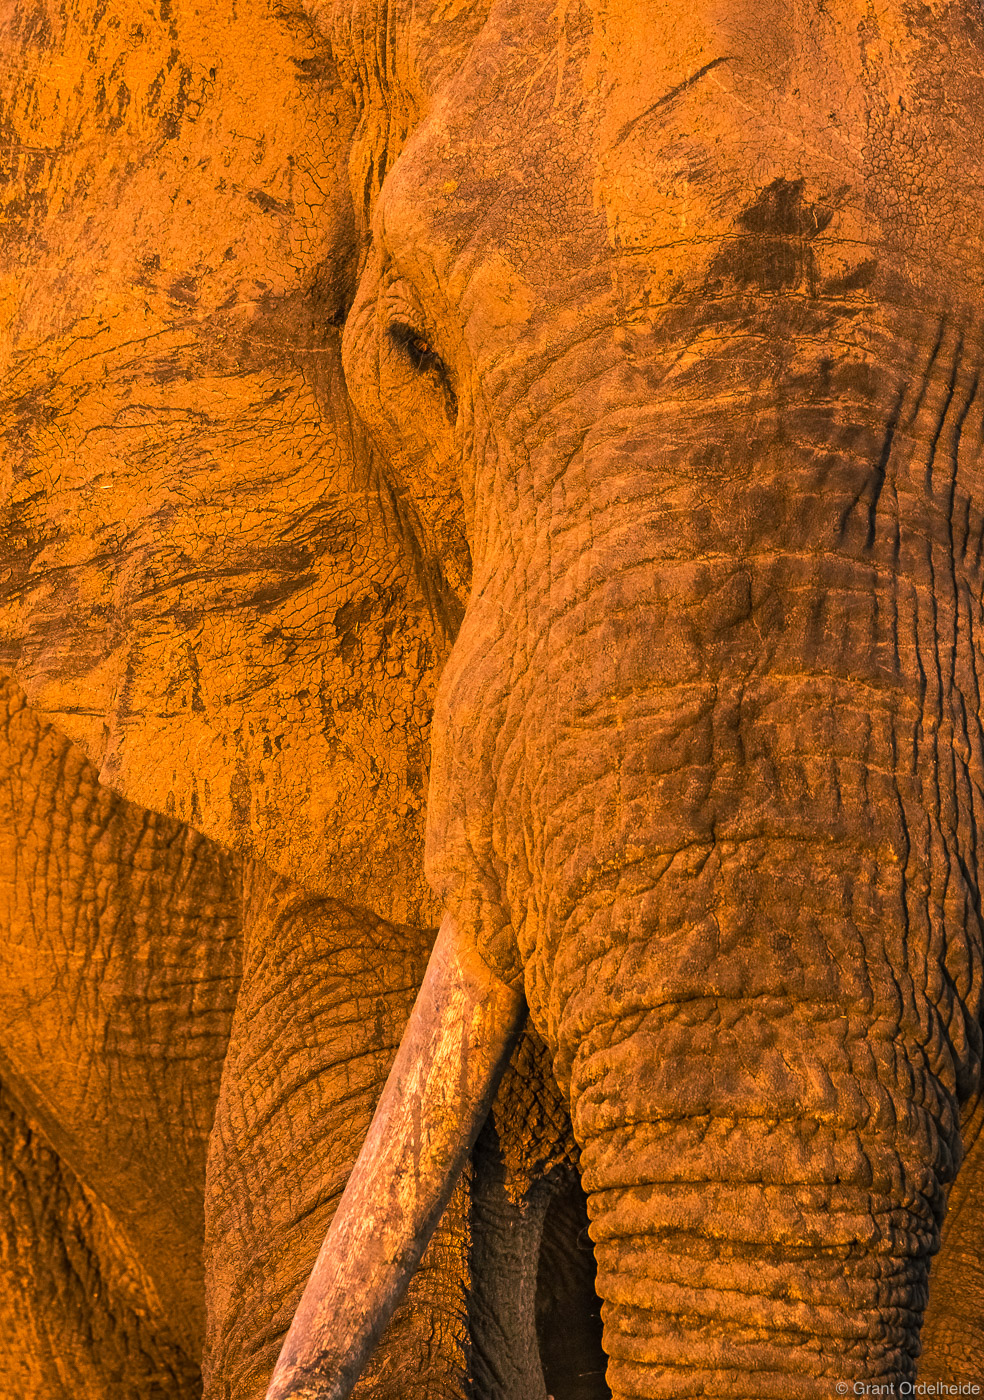 elephant, texture, sabi, sands, south, africa, tight, image, large, mud, covered, game, reserve, , photo